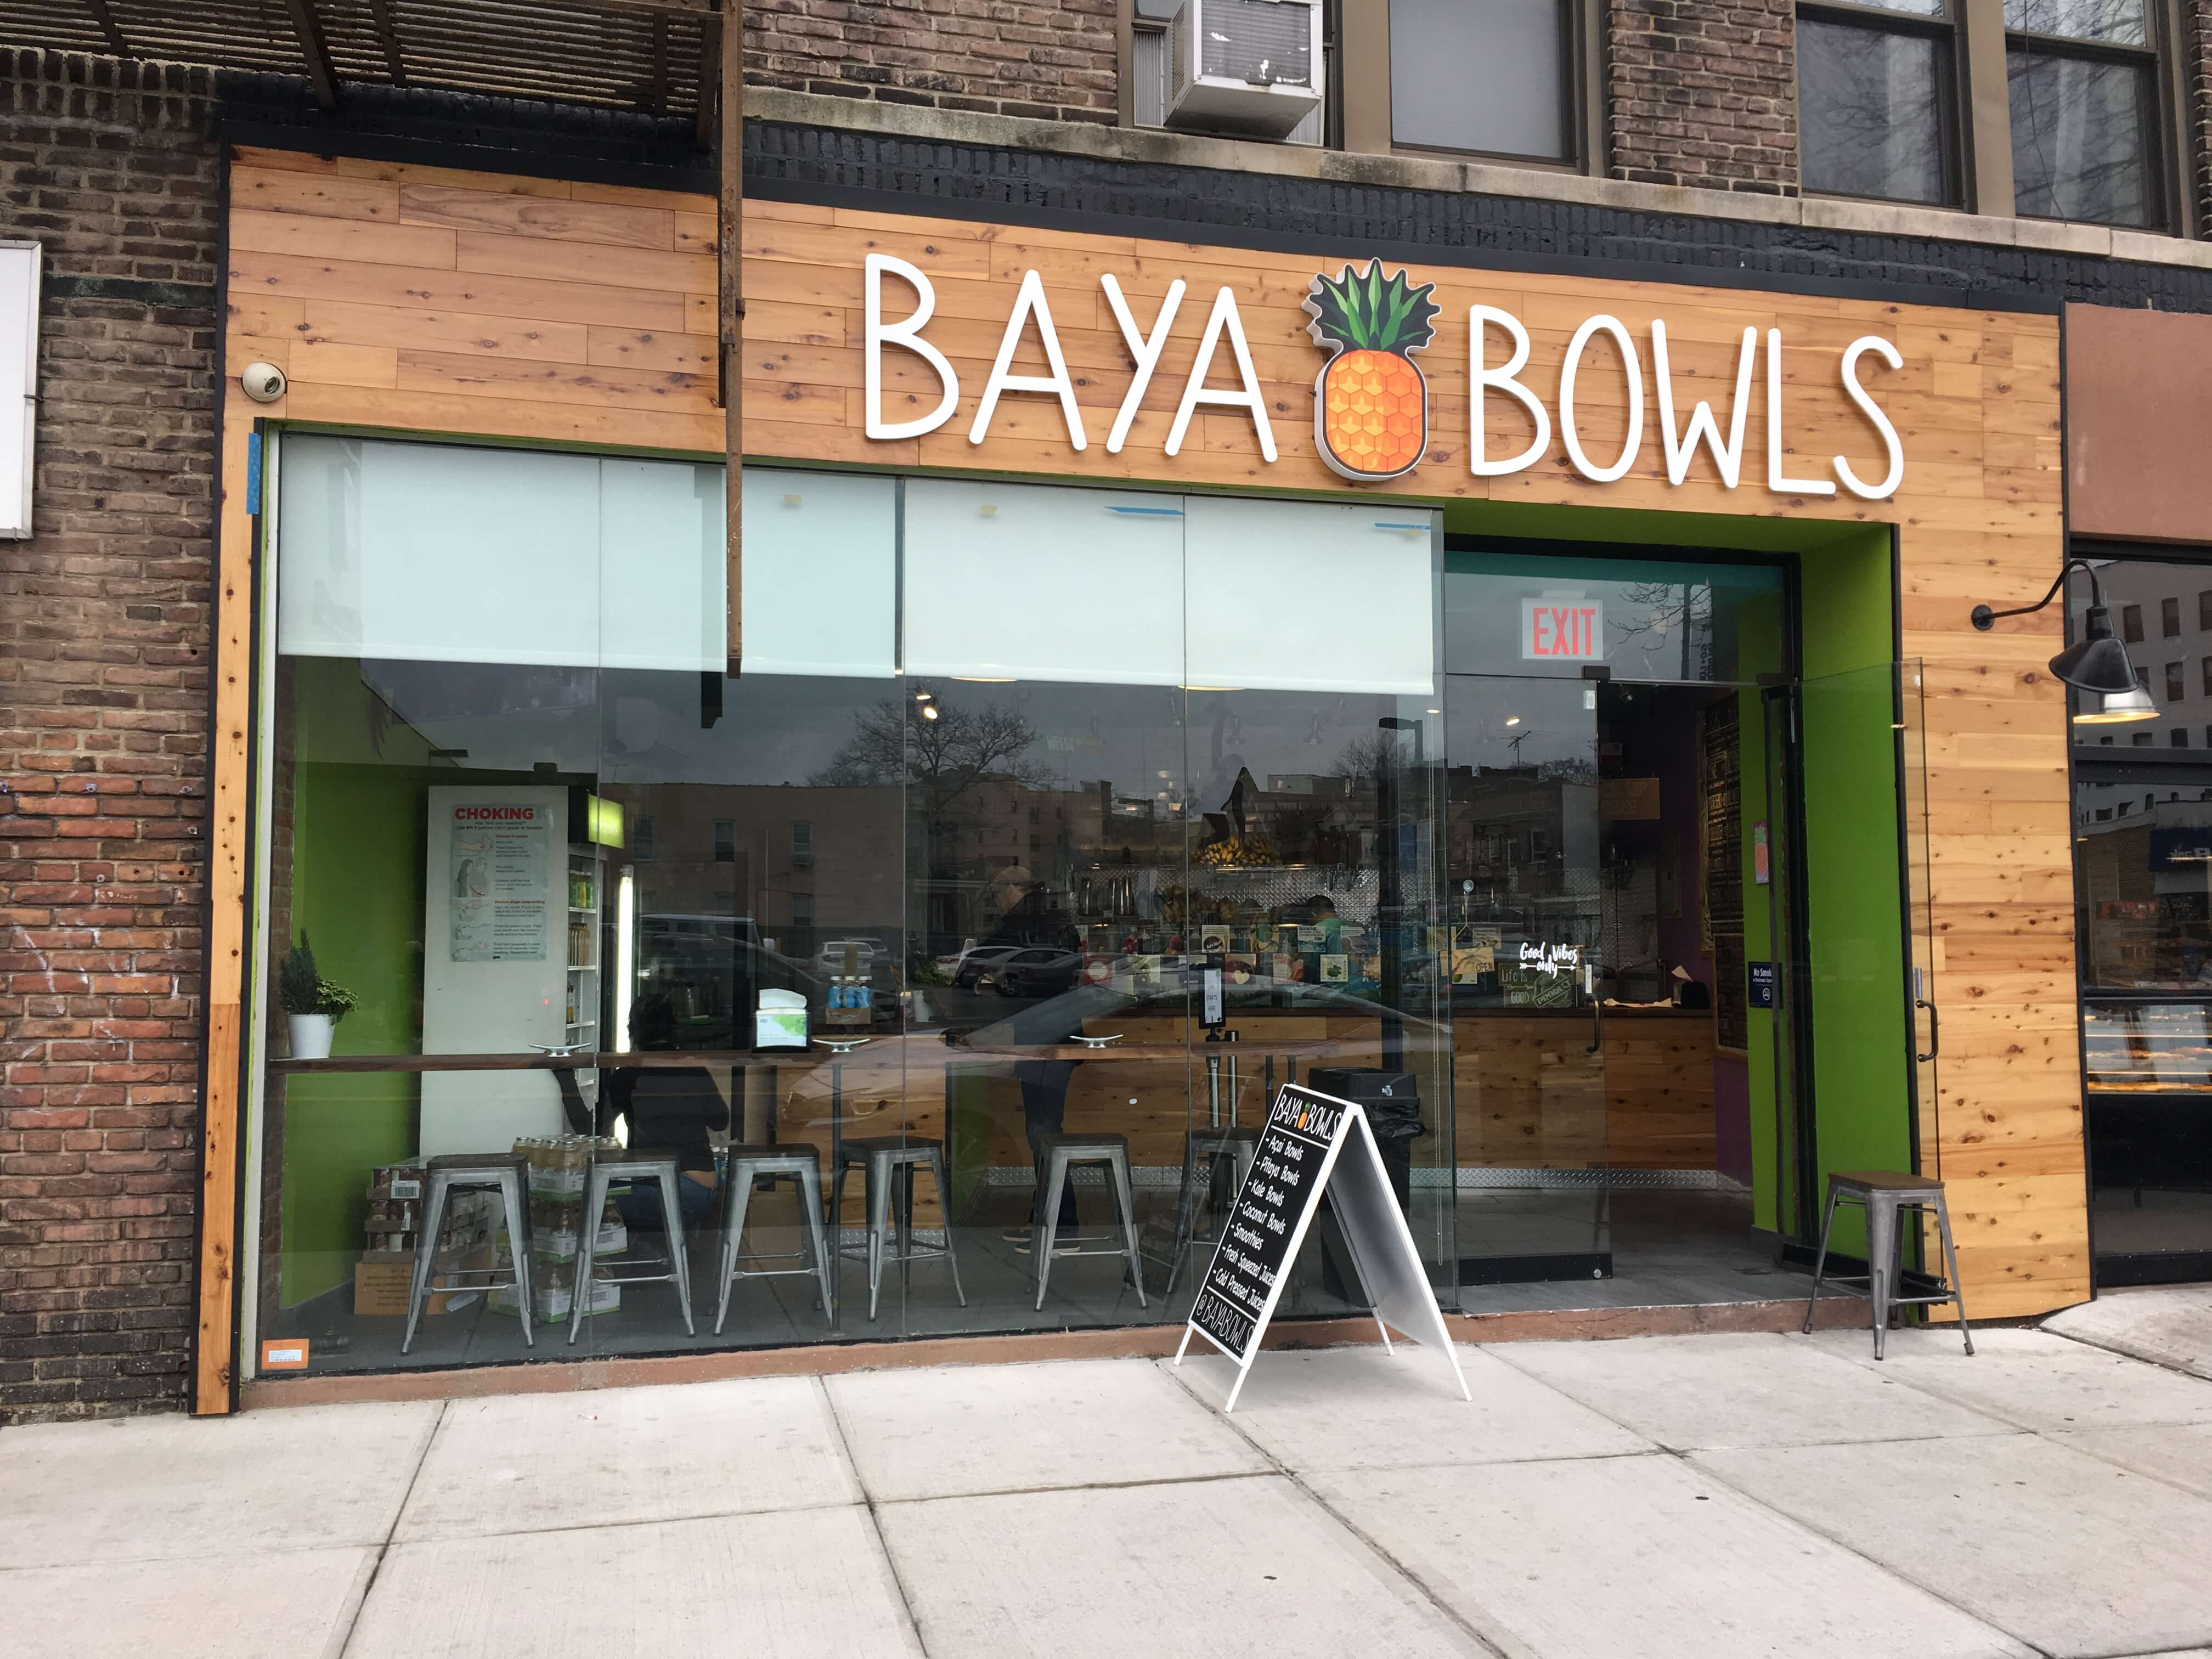 Health food sweet spot Baya Bowls now open in Bay Ridge